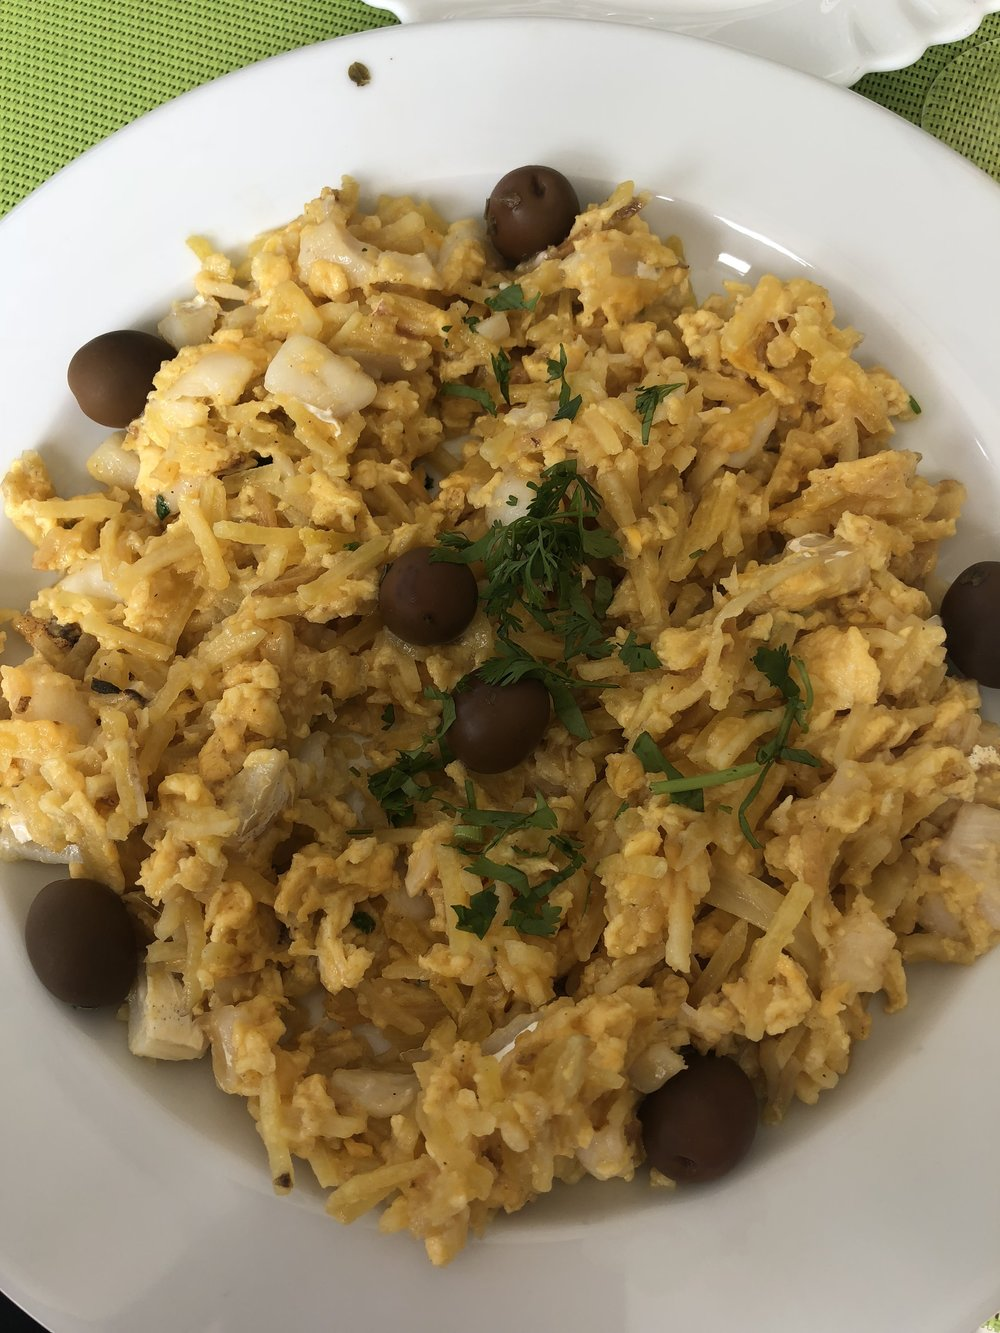 Bacalhau a Bras - rice and seafood (mainly cod) dish. Mine was also garnished with olives :)